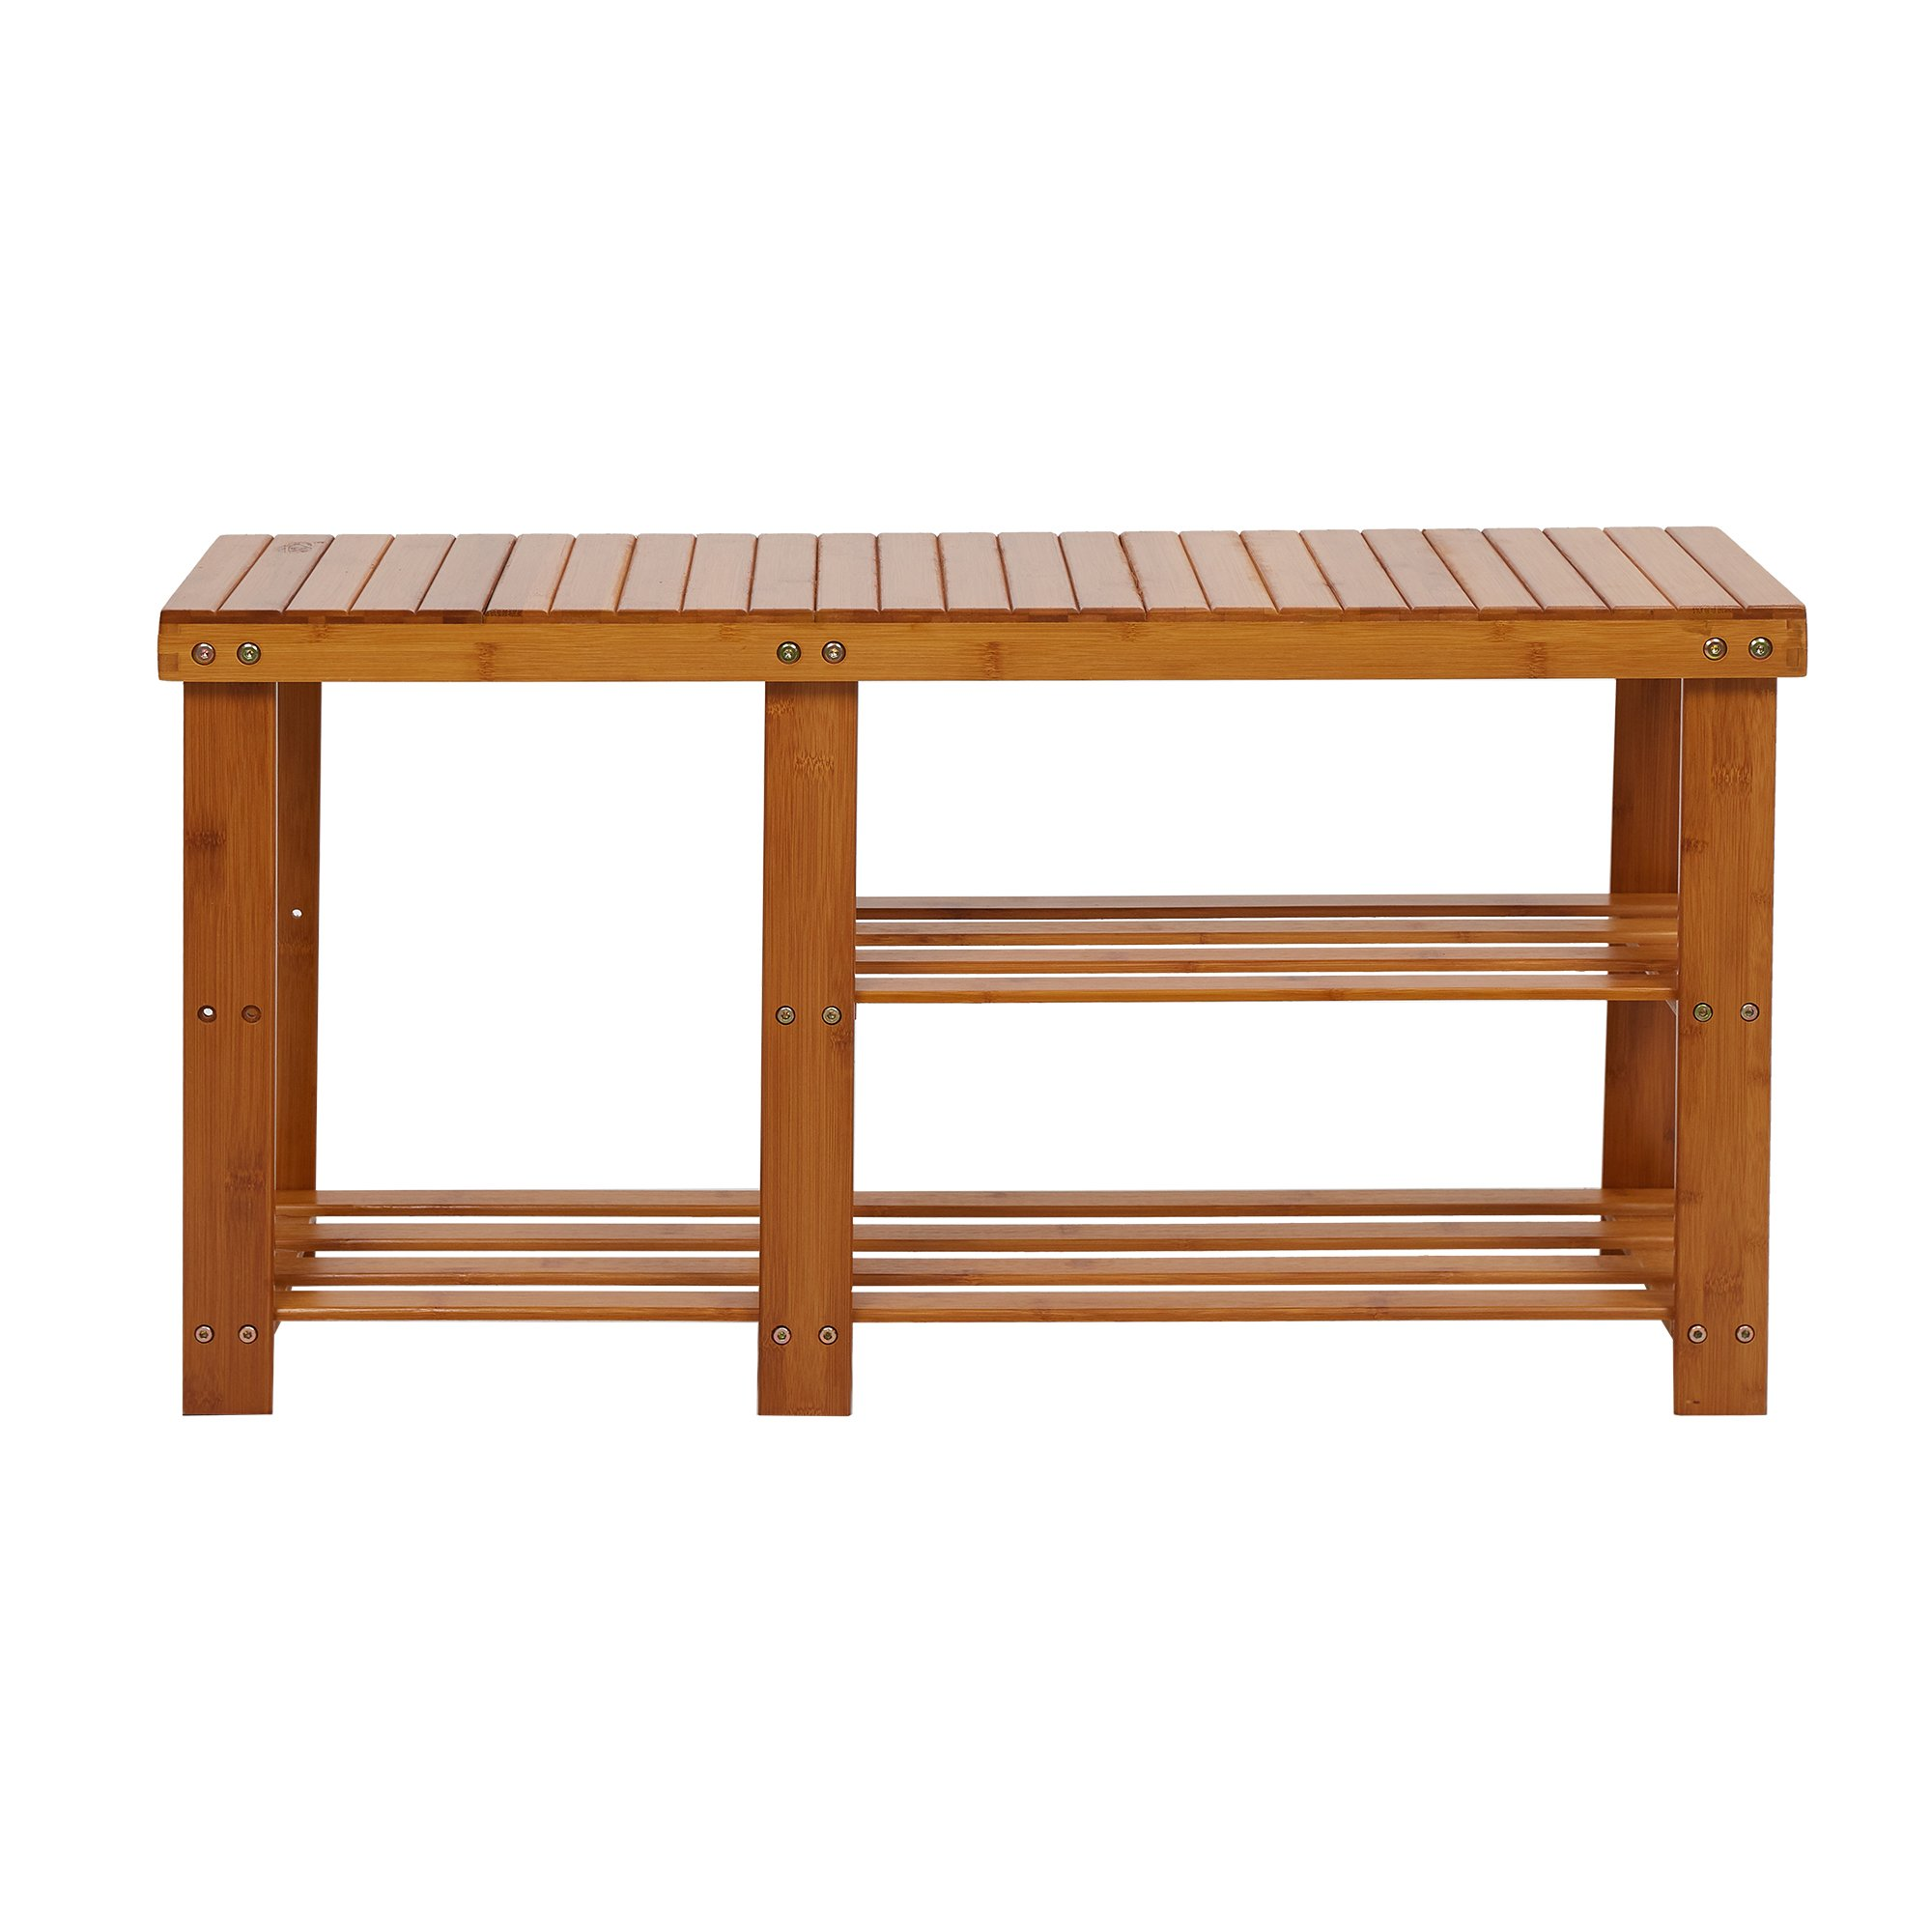 KARMAS PRODUCT Shoe Bench Bamboo Rack Shelf Organizer Entryway Storage Rack with High and Low Levels for Adult and Child